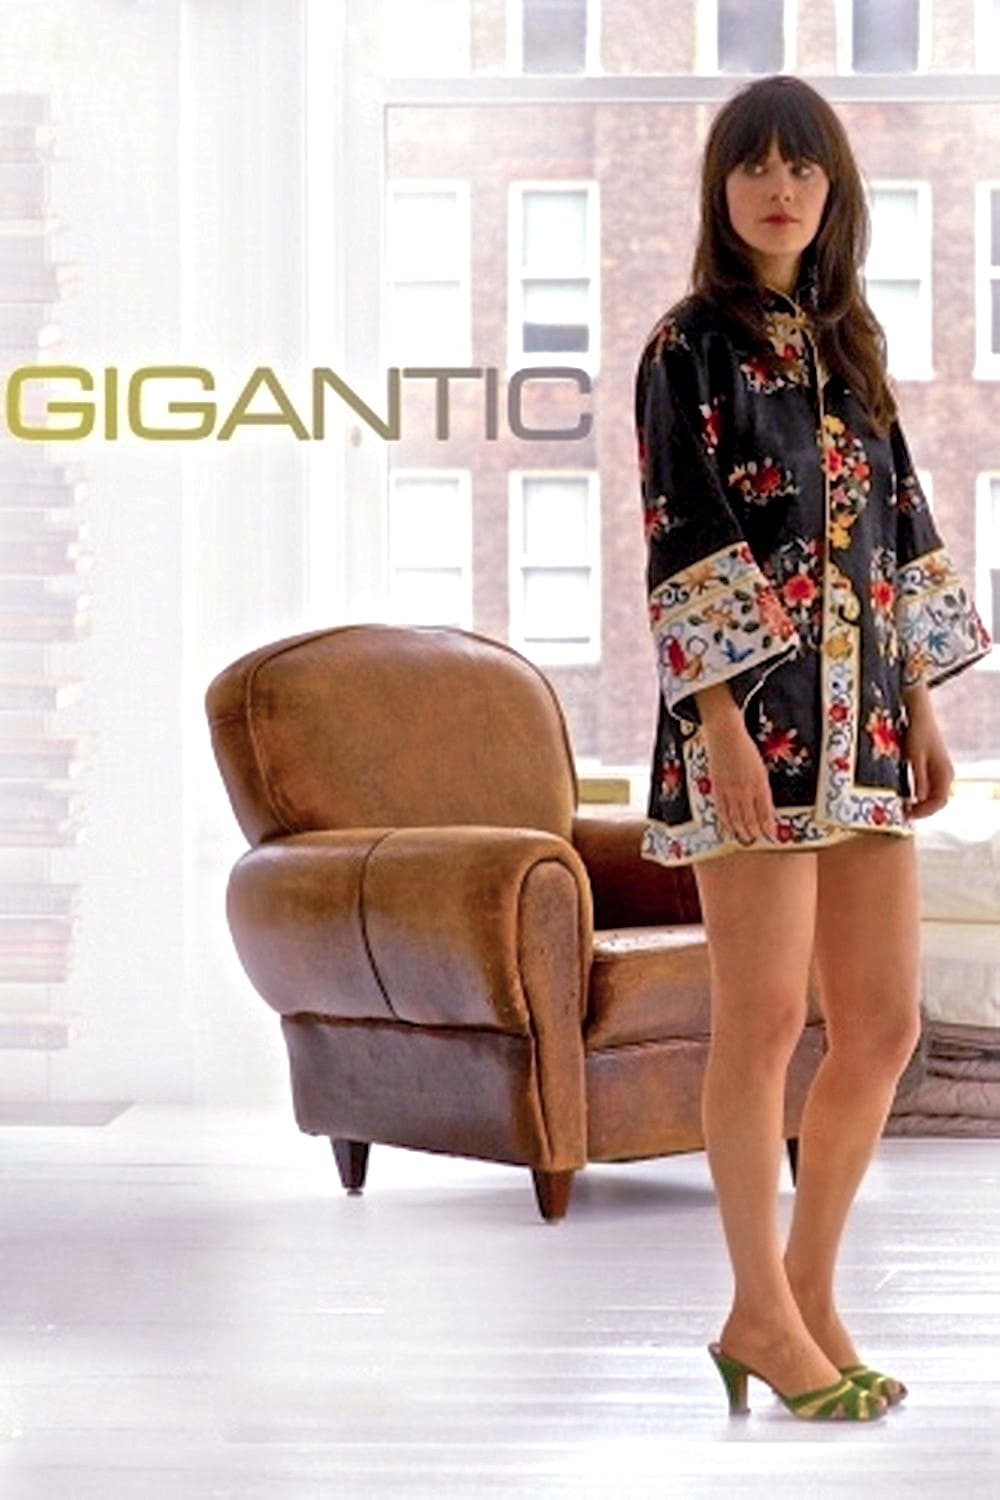 Gigantic on FREECABLE TV